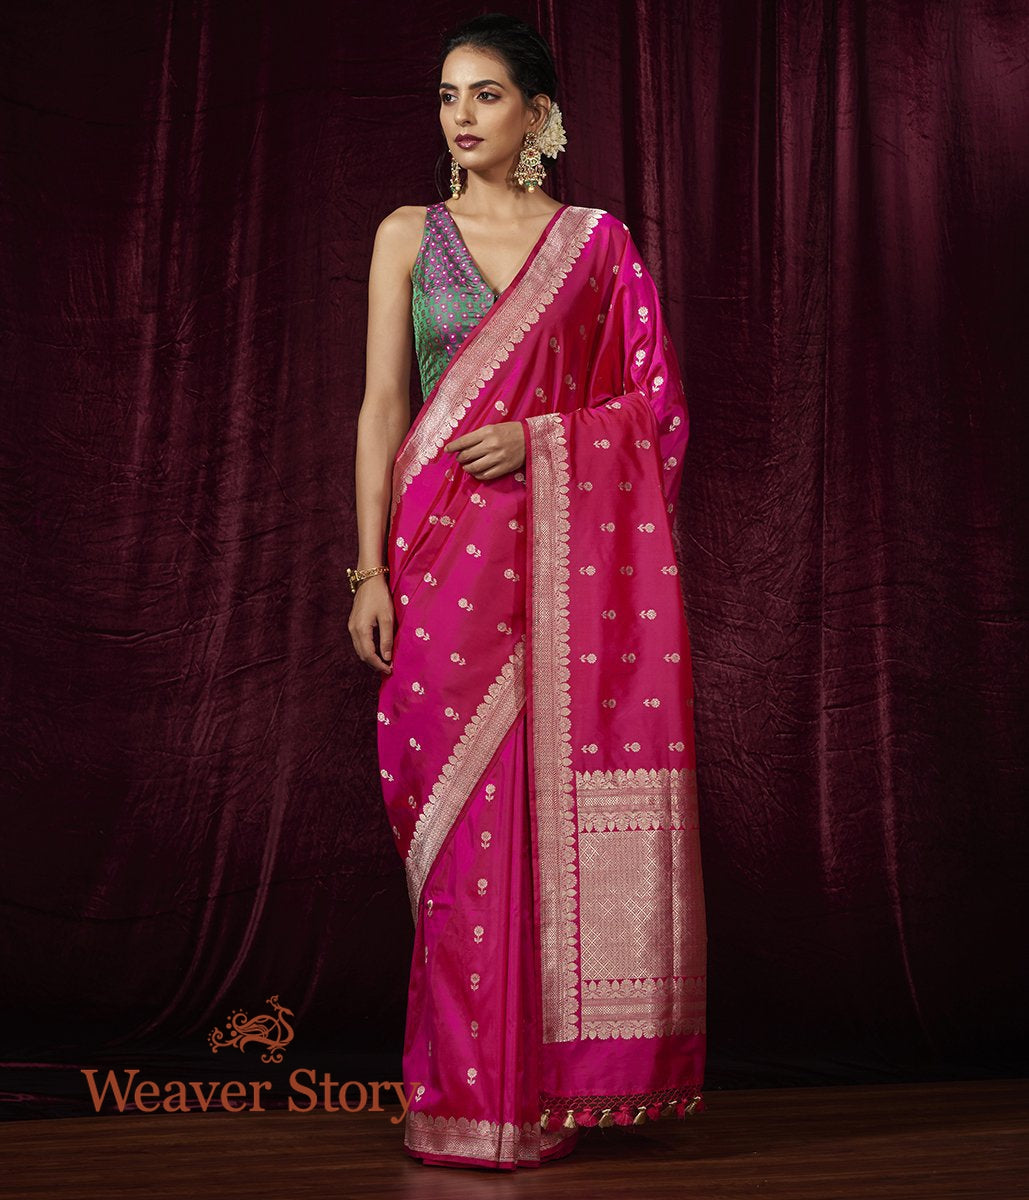 Handwoven Hot Pink Katan Silk Saree with Small Floral Booti